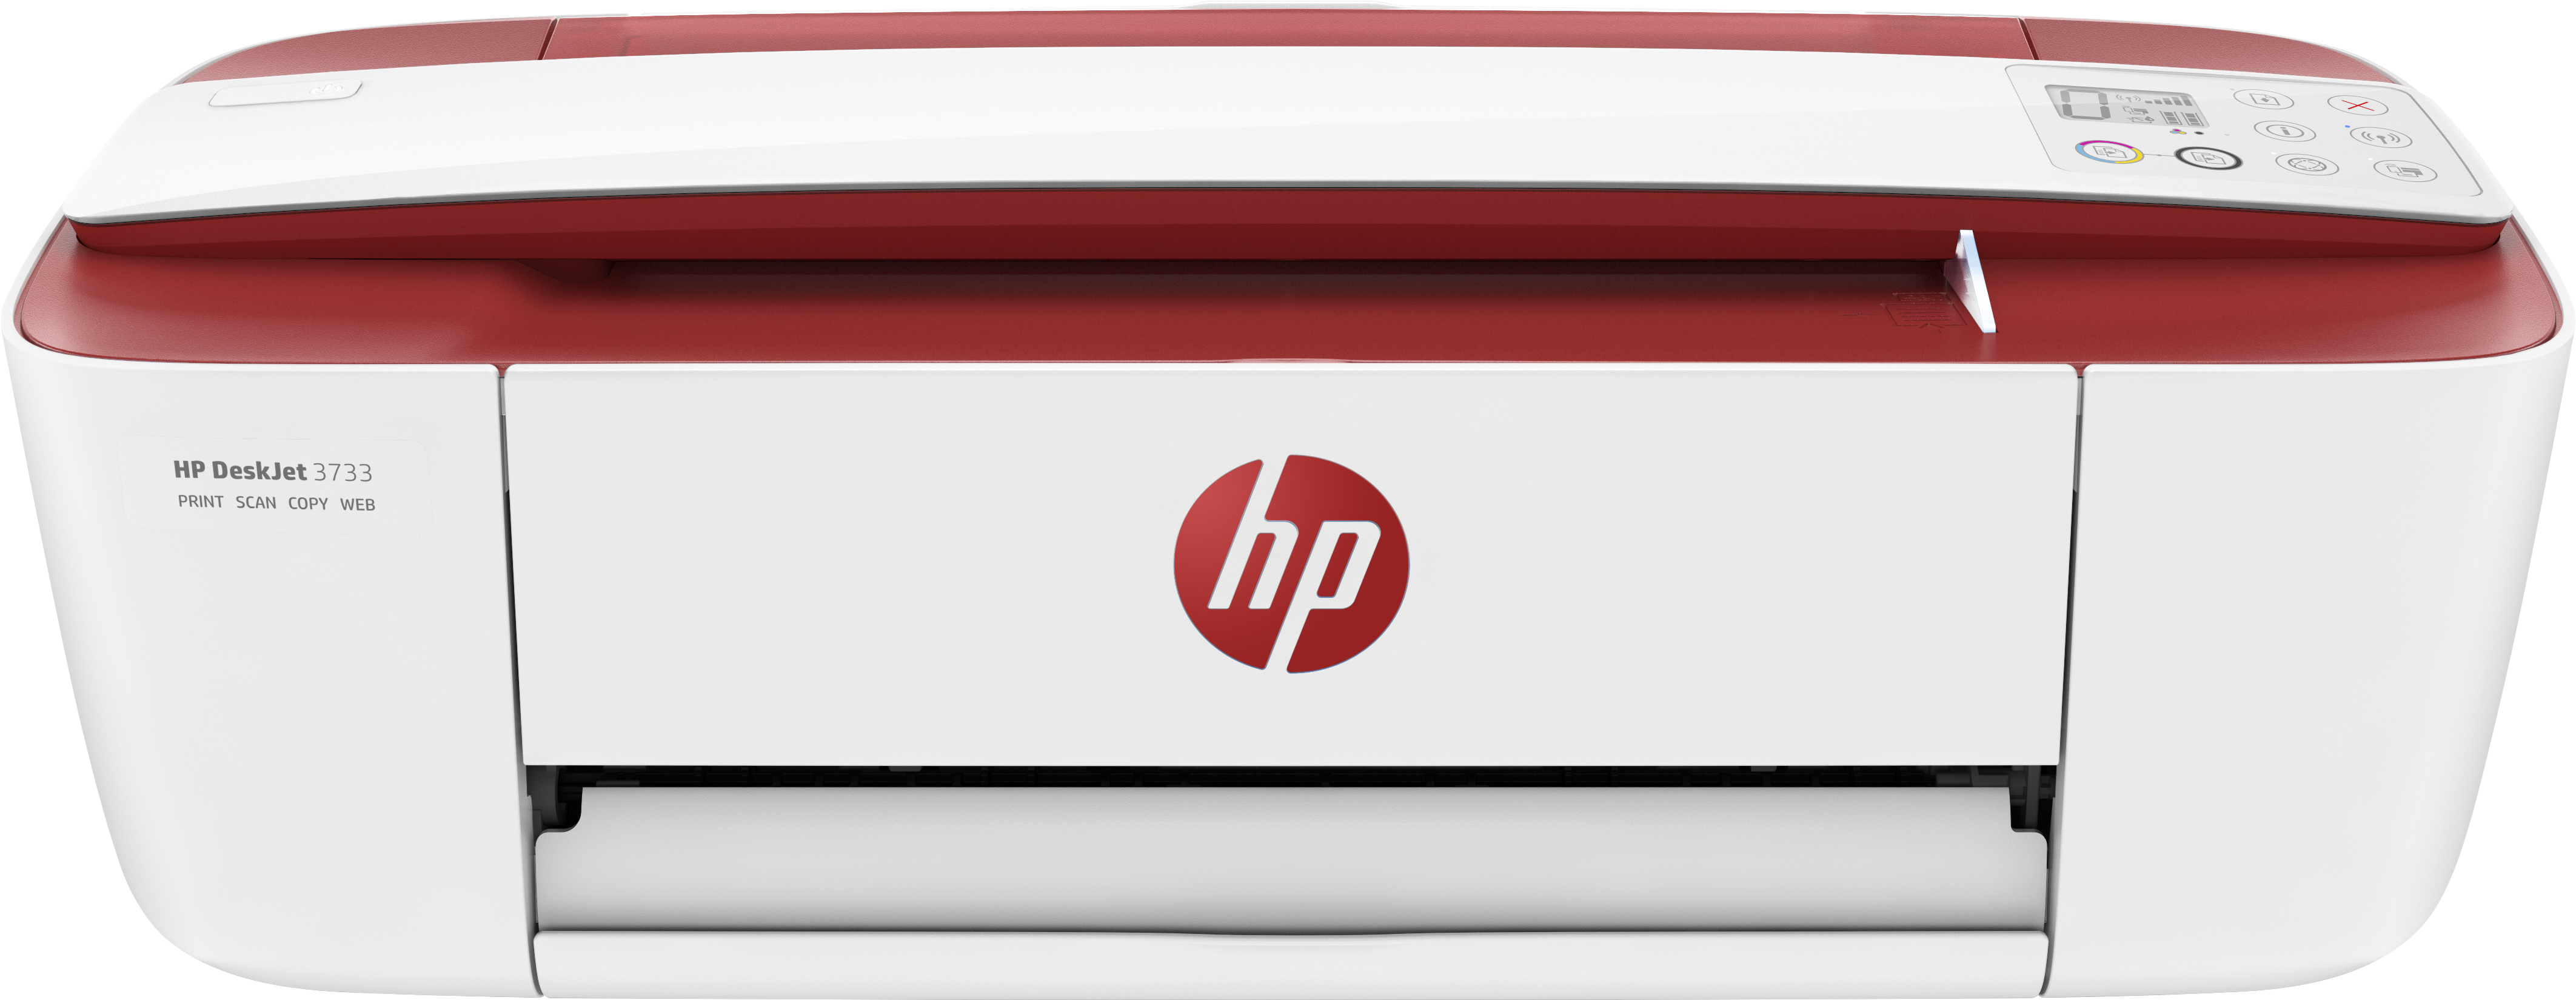 Hewlett Packard (HP) HP Deskjet 3733 All-in-One Drucker (Red)